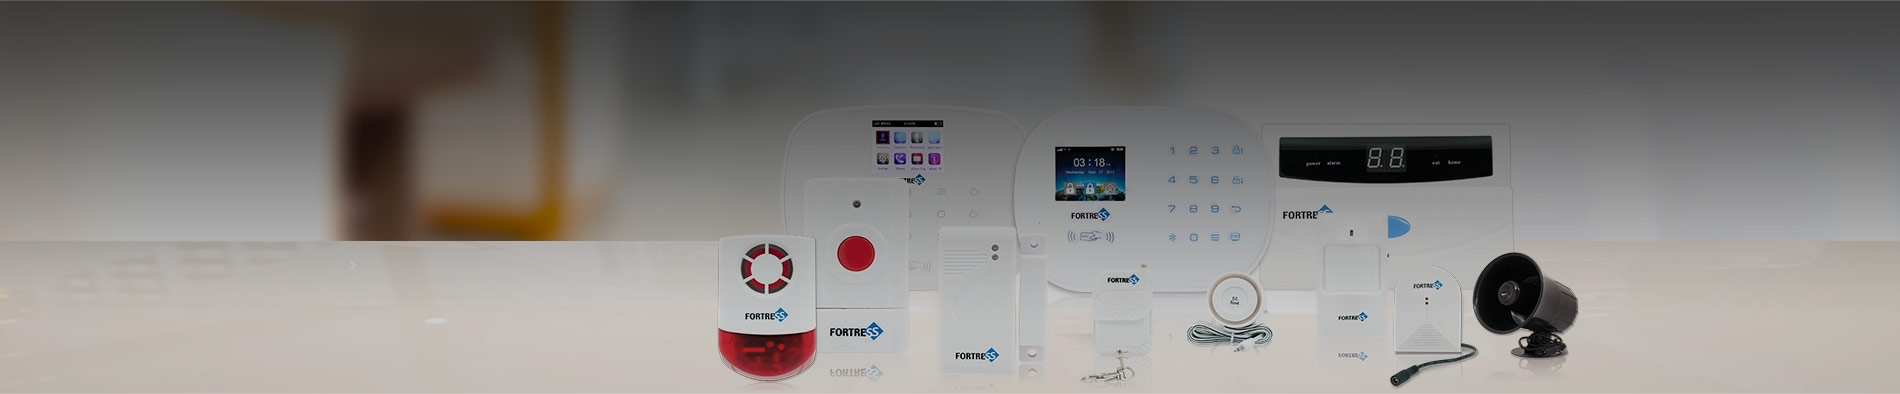 S6 Titan 3G/4G WiFi Security System